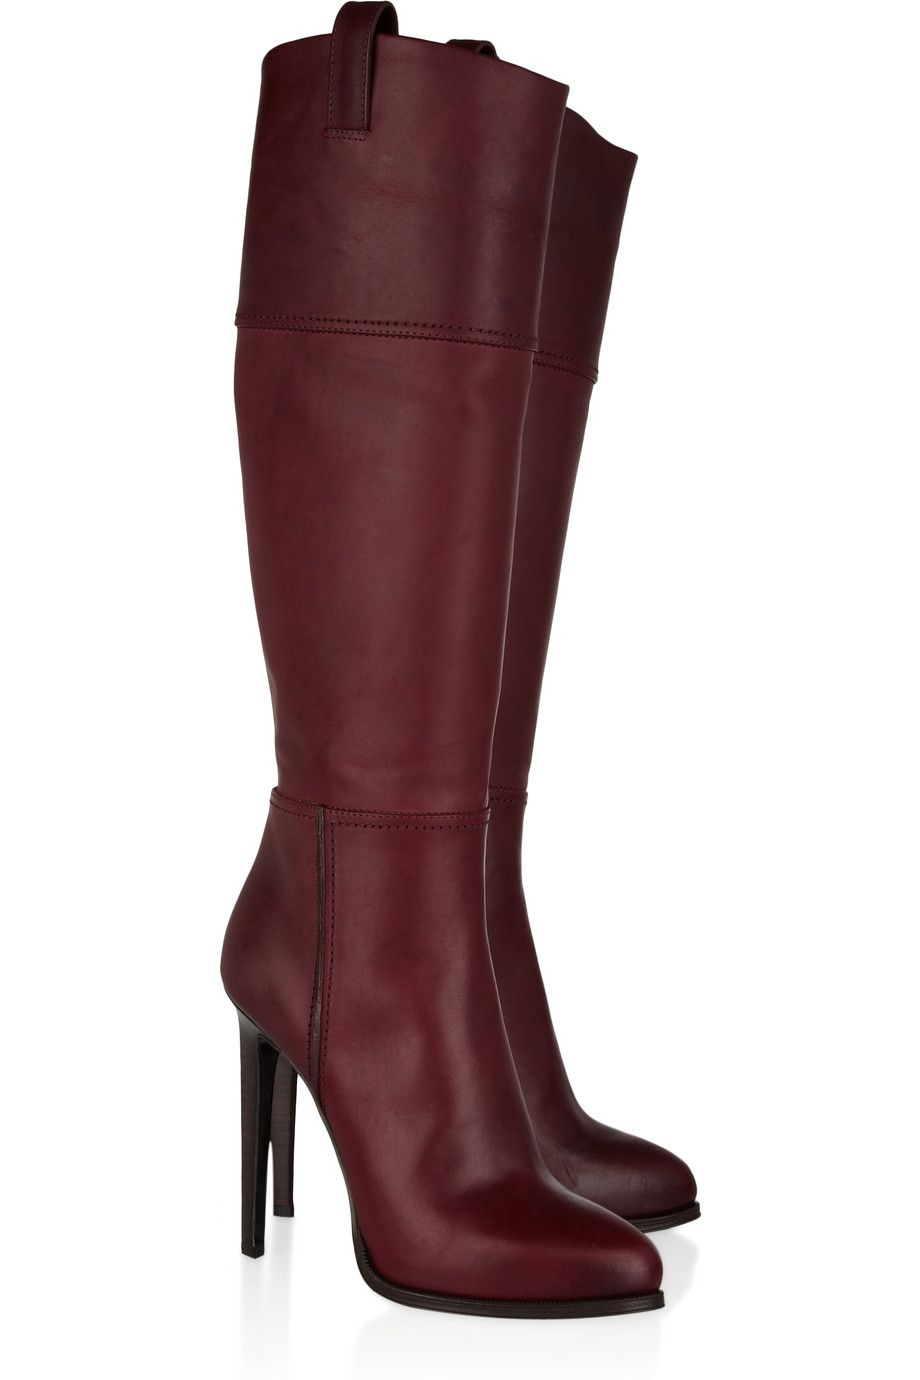 Leather knee boots by Emilio Pucci